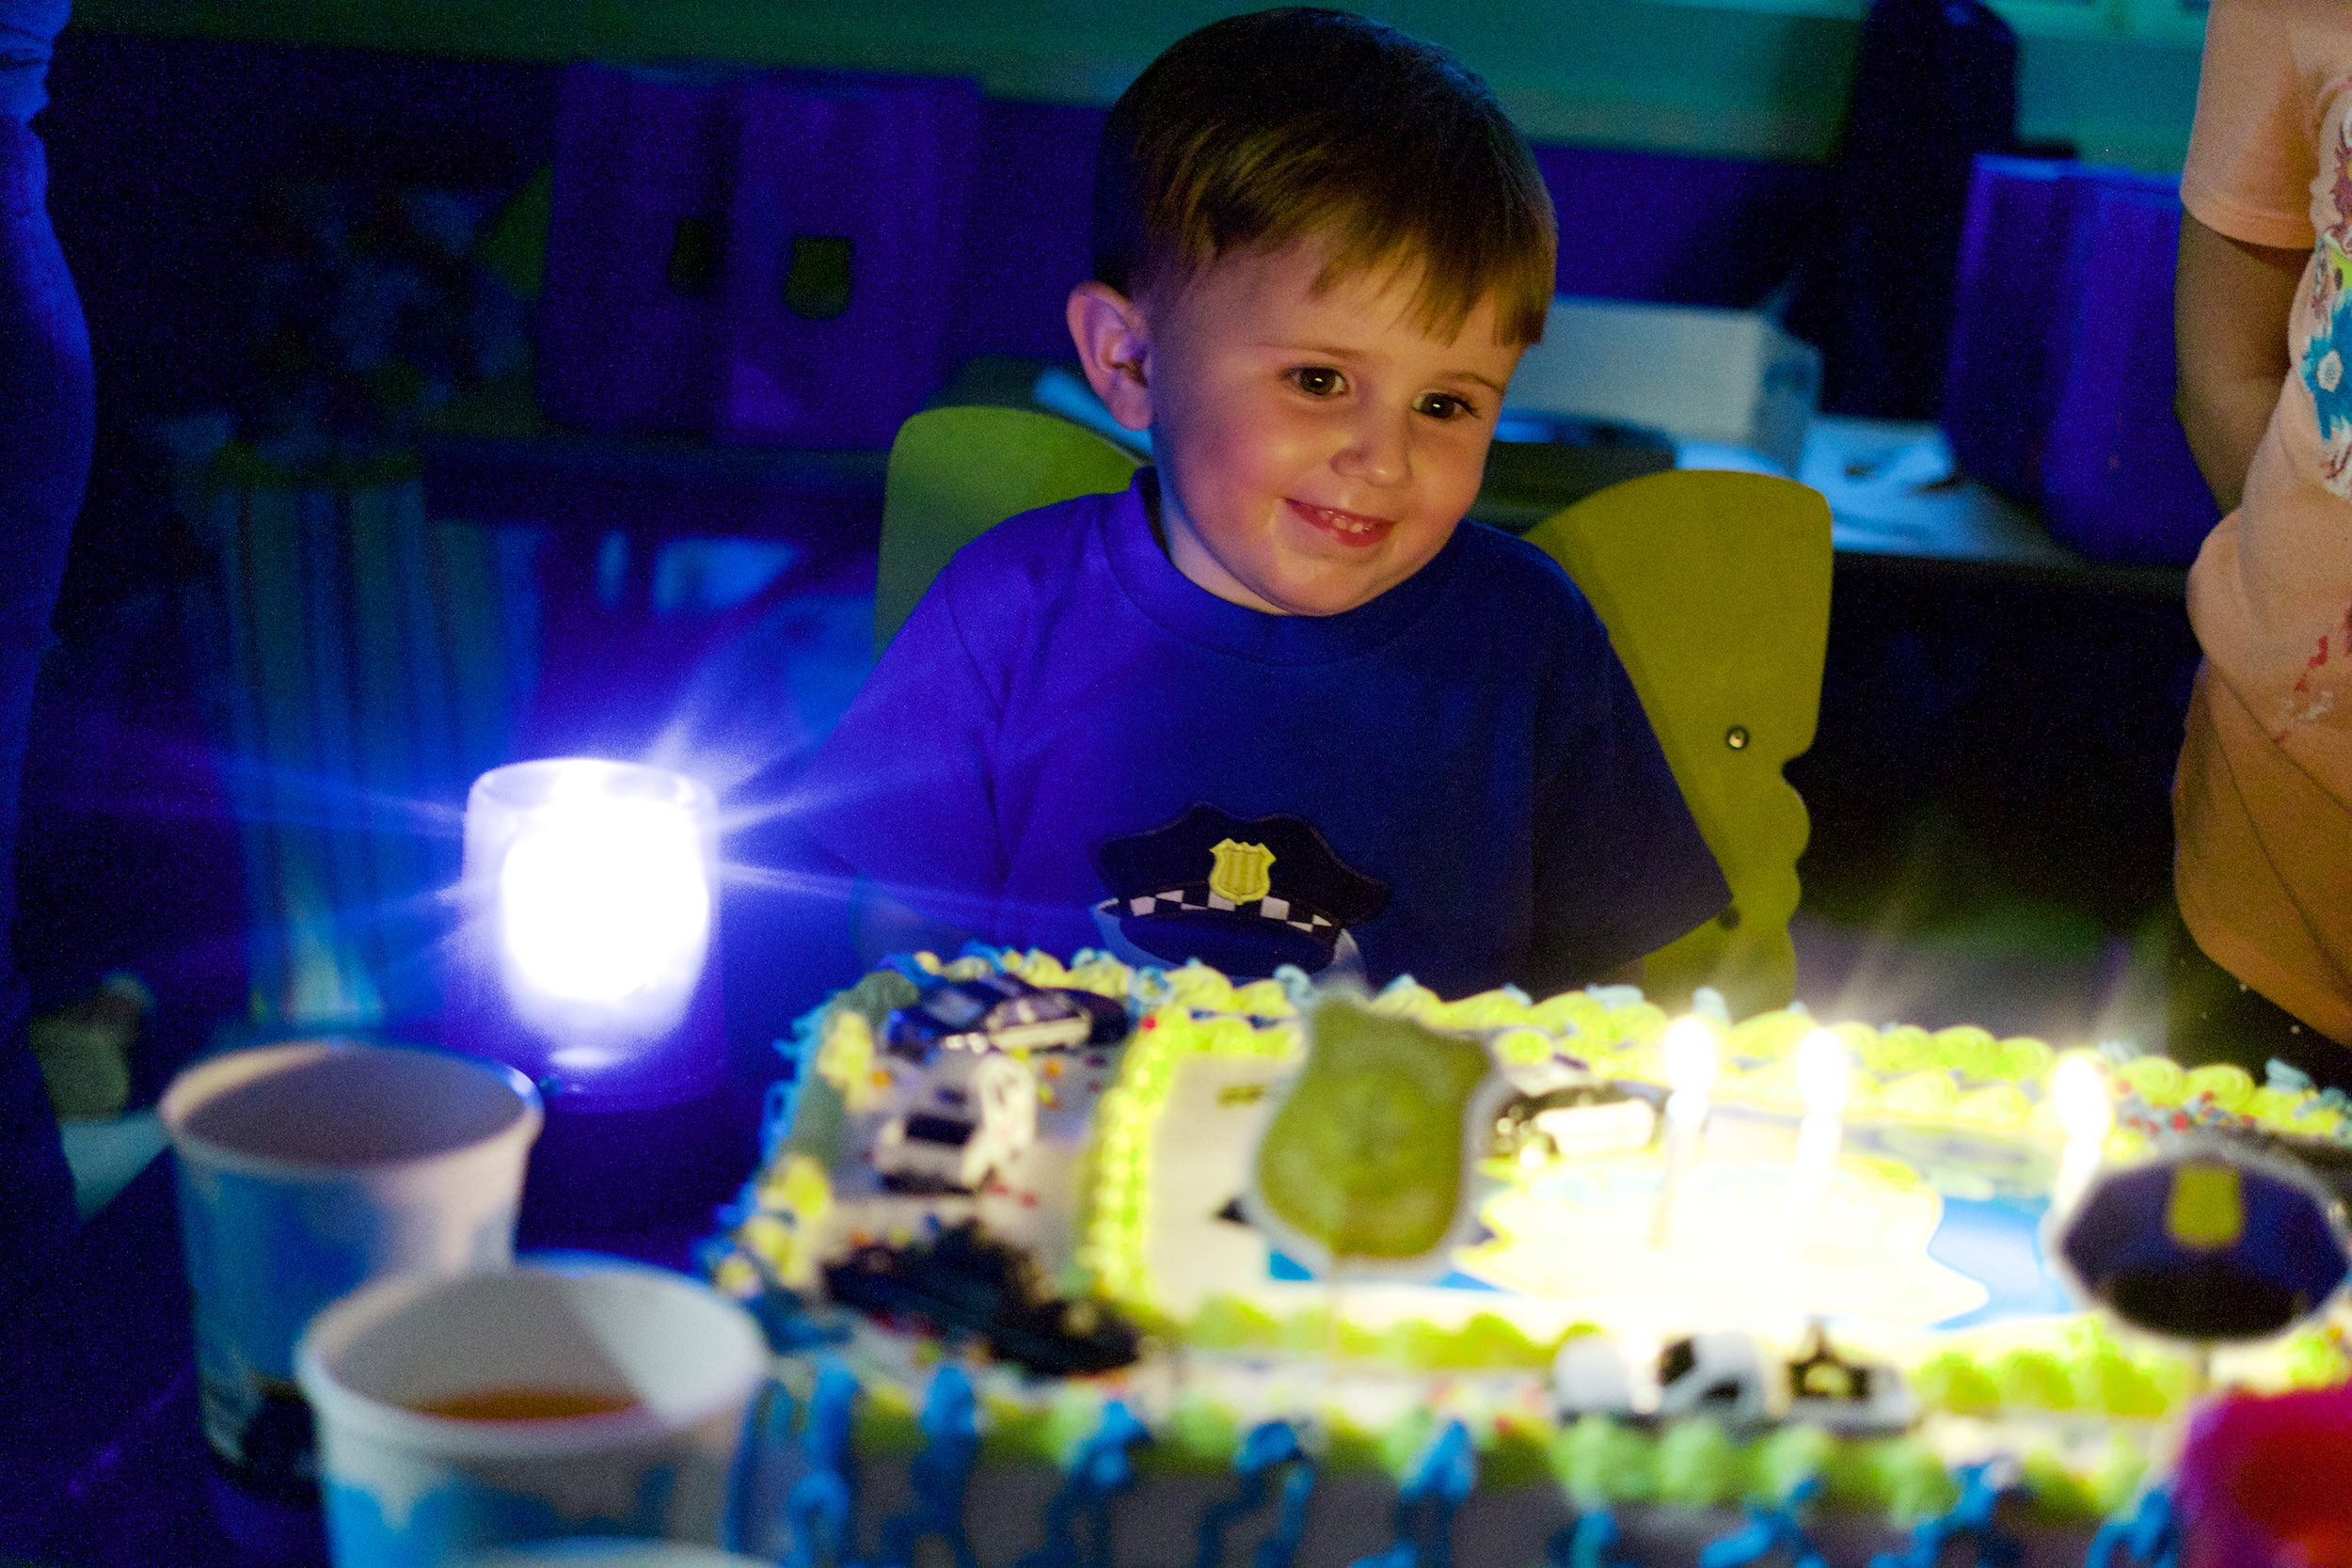 _Coltons_3rd_Birthday_2016-10-29_at_17-32-44.jpg